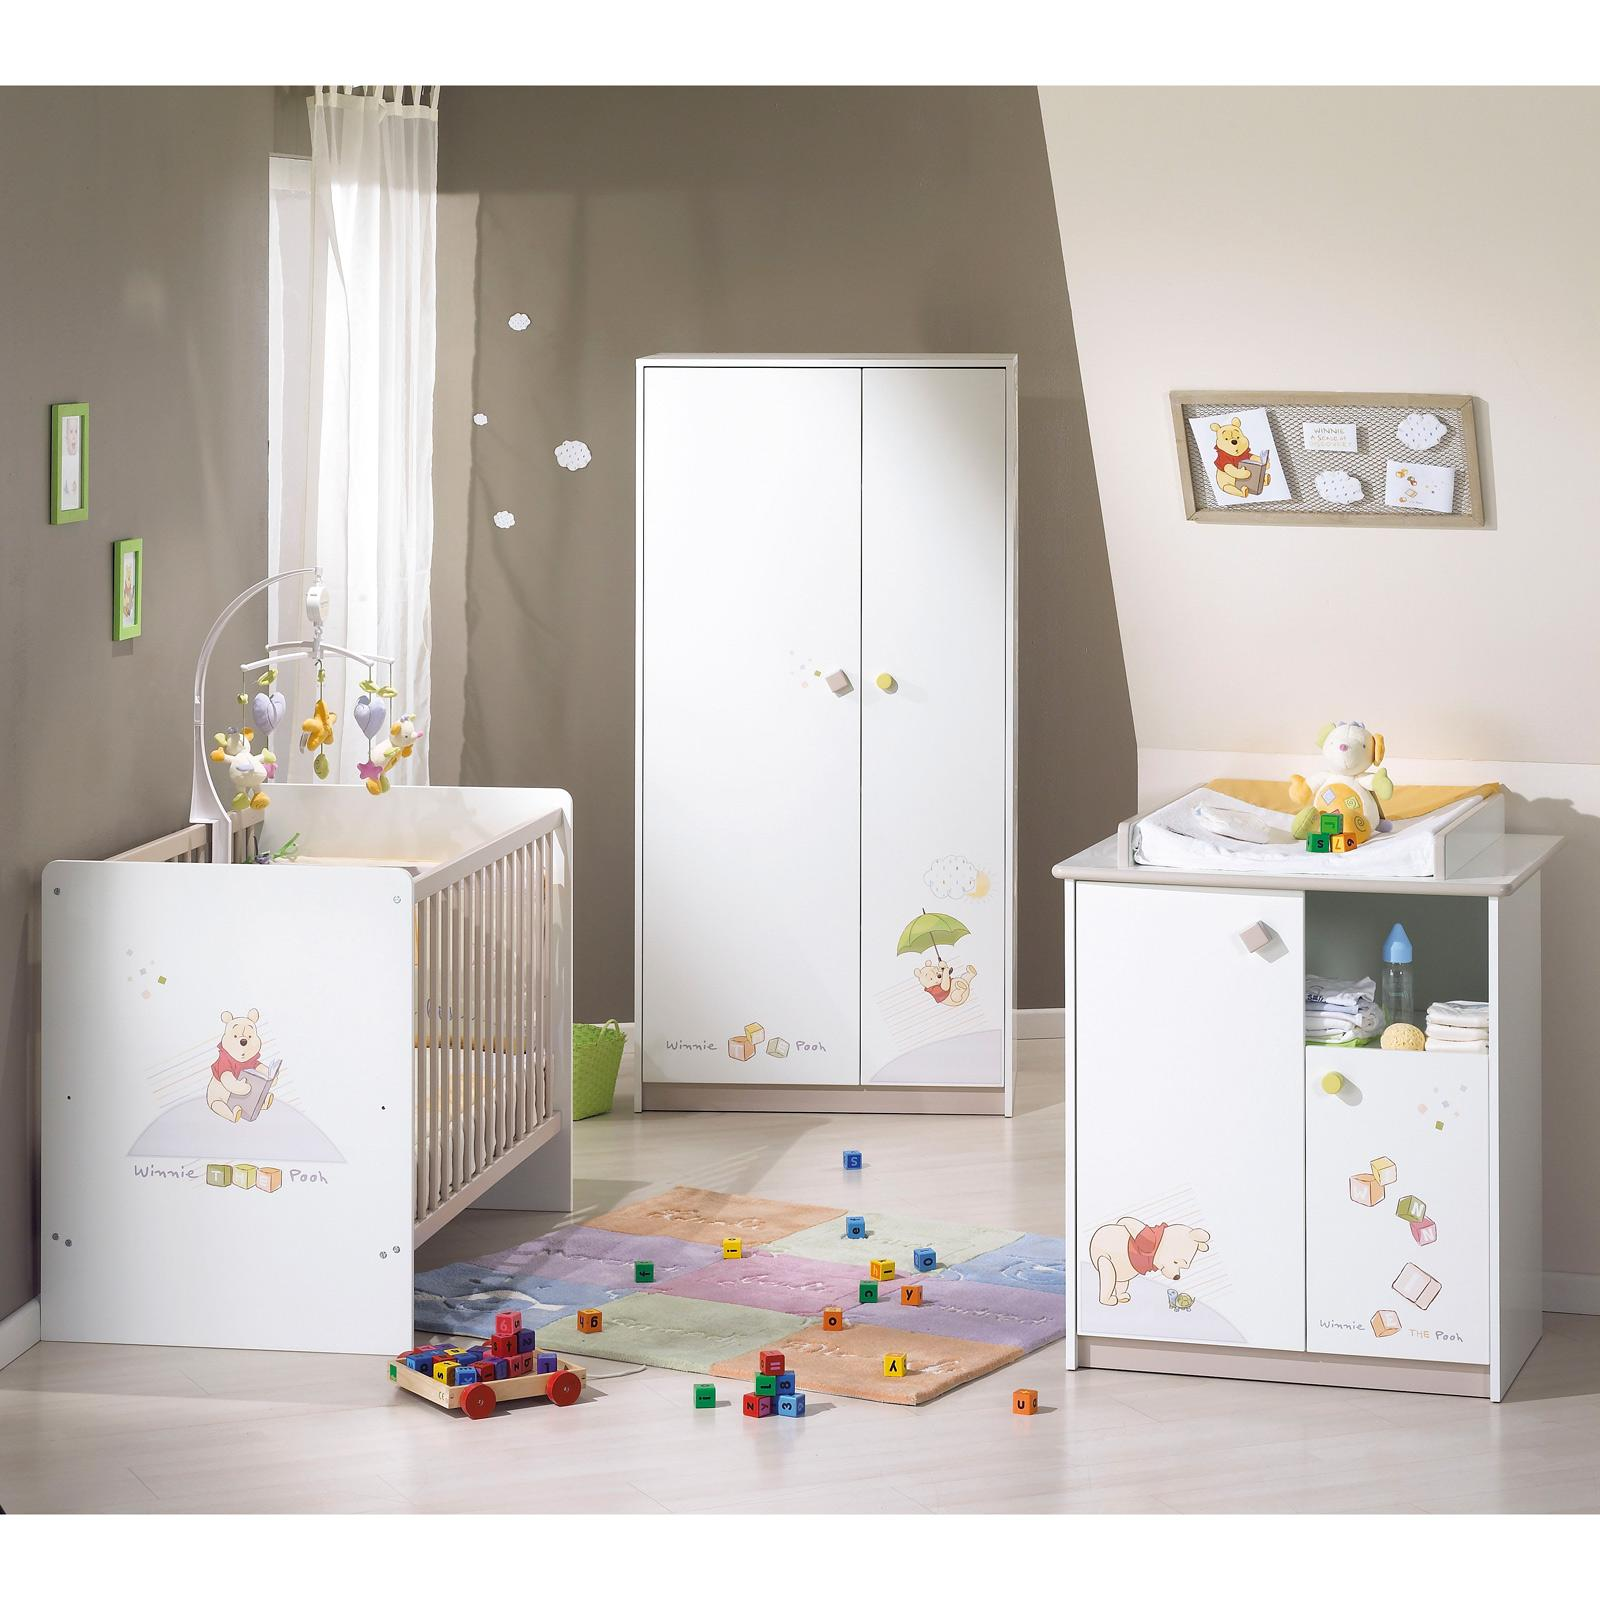 Decoration chambre winnie l ourson pas cher for Chambre de fille conforama